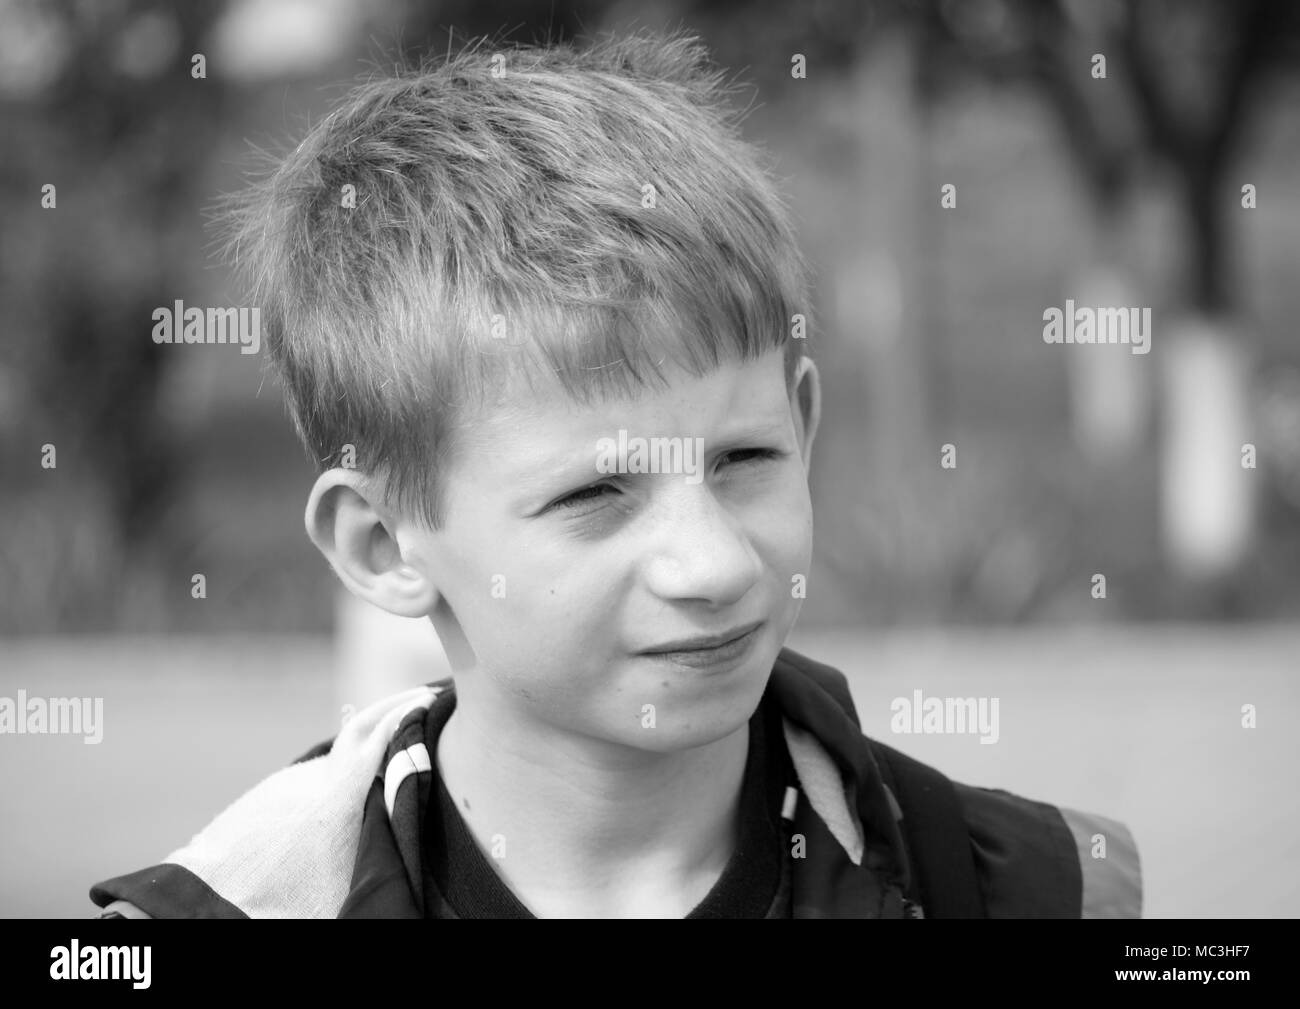 Black and white photo of a serious boy. - Stock Image